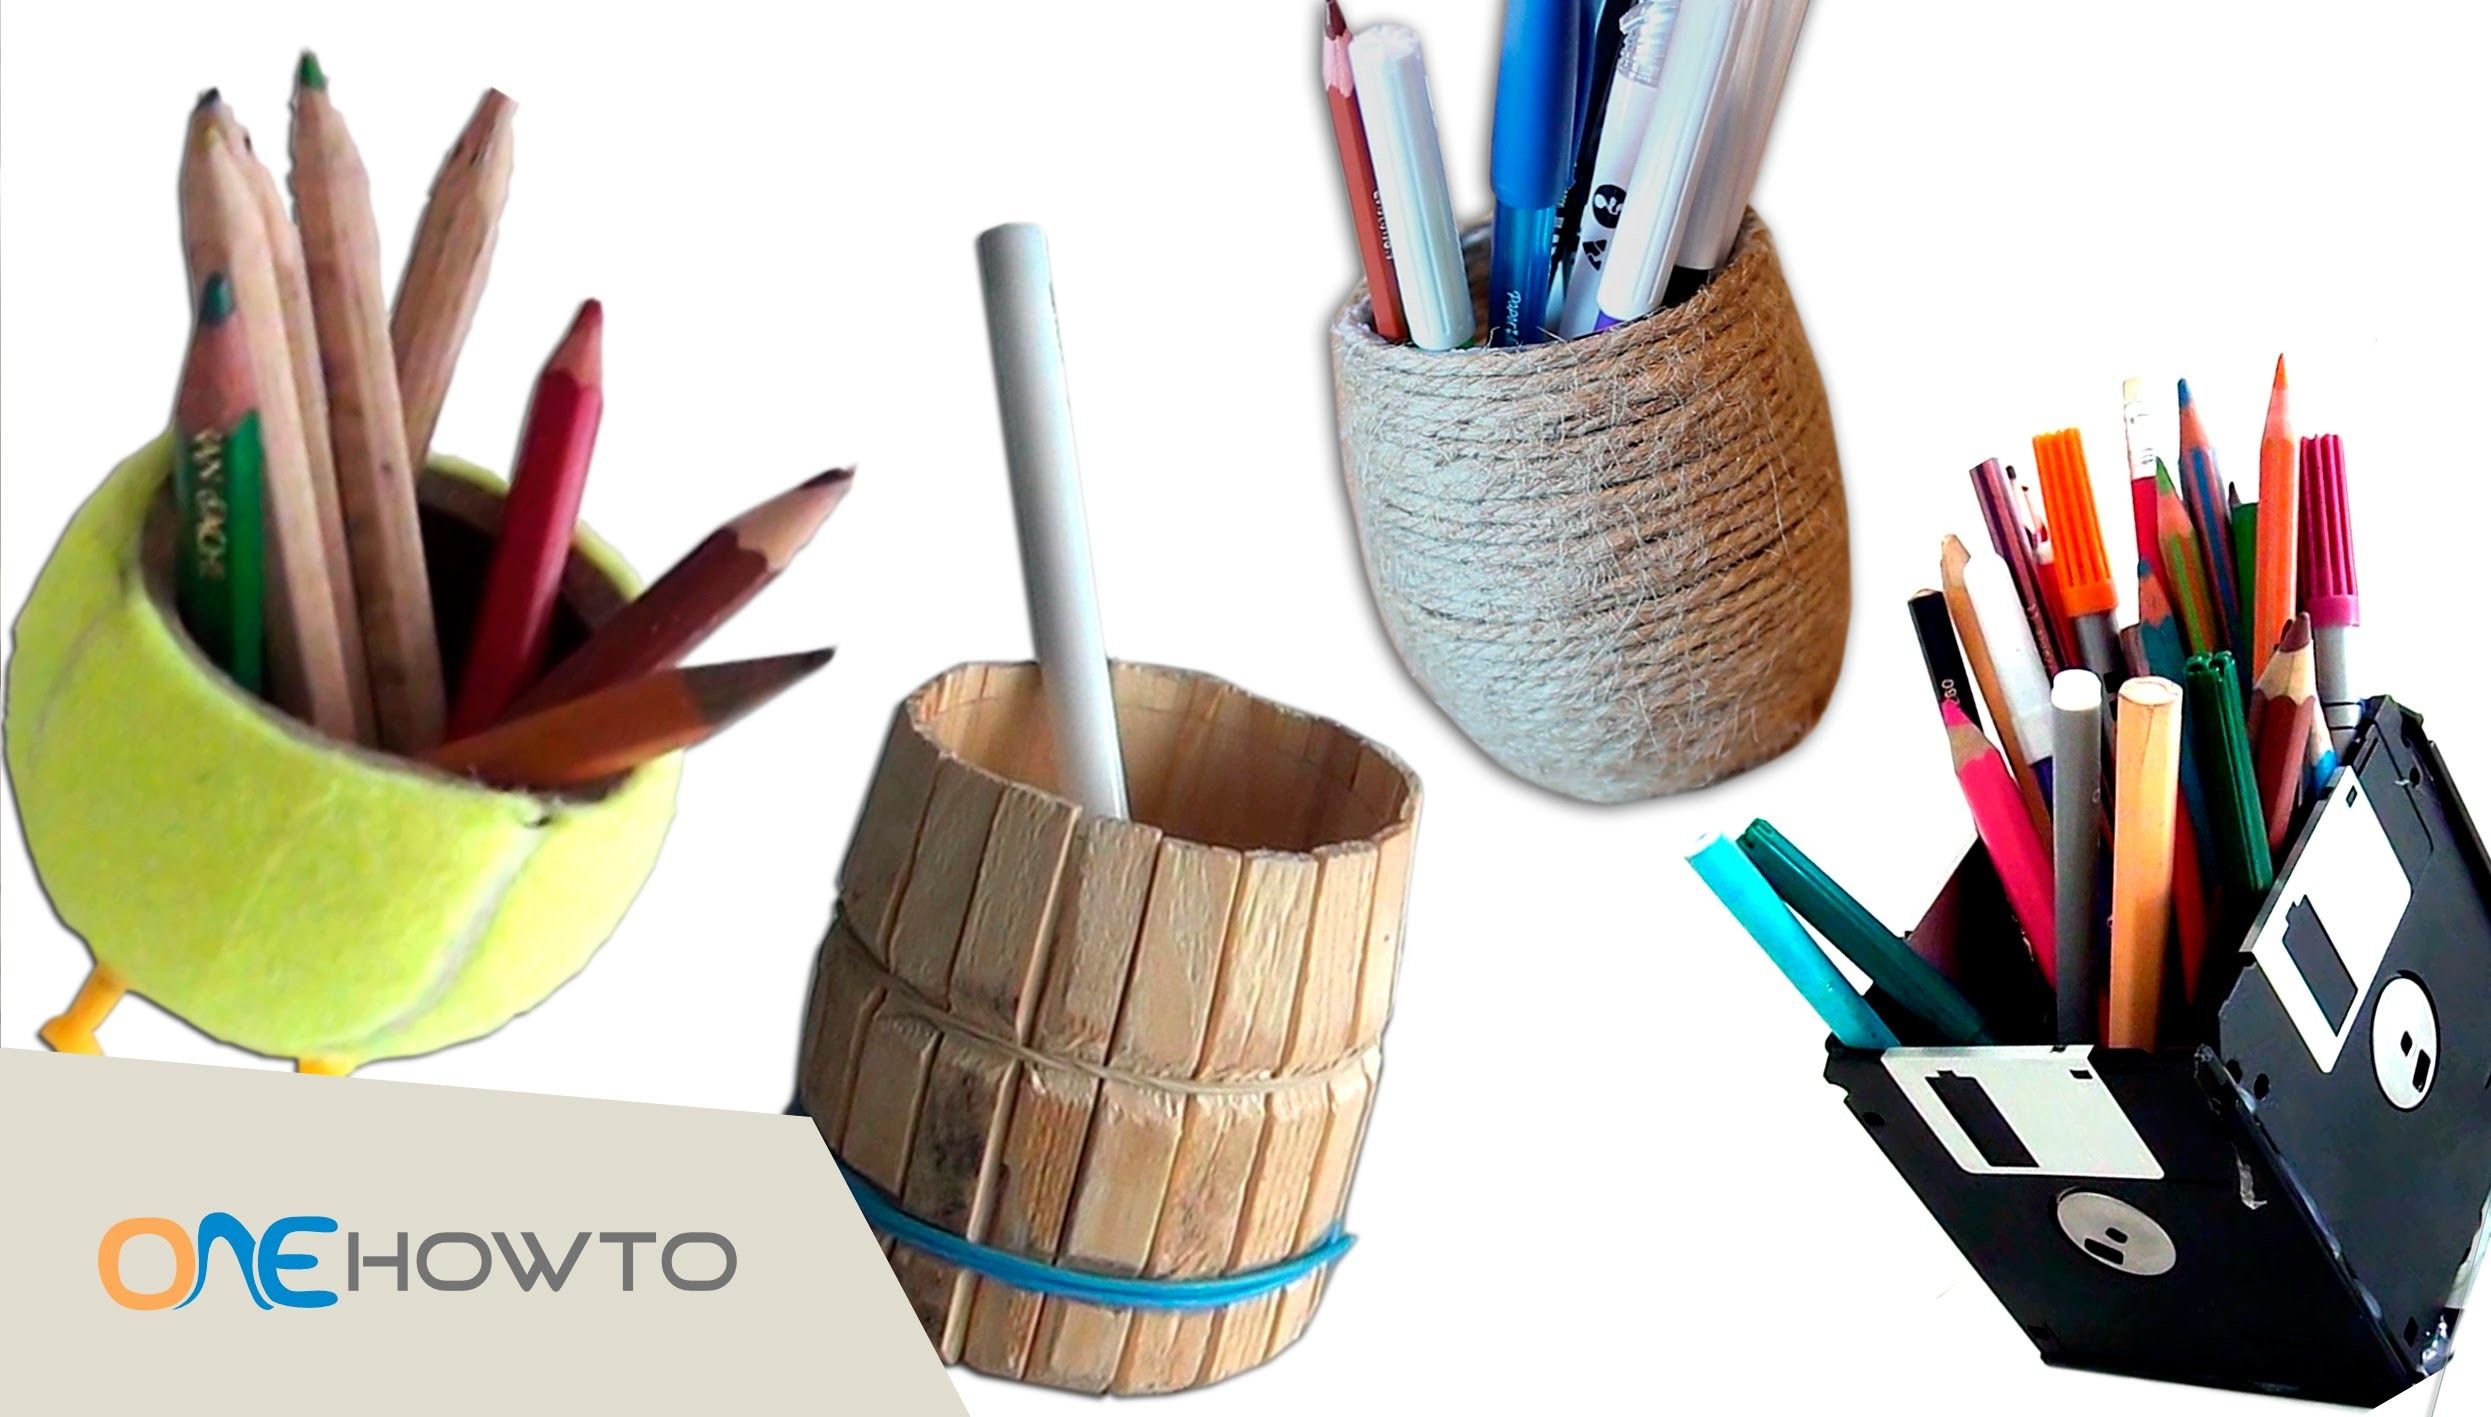 4 diy pencil holders crafts with waste material my for Make any item using waste material